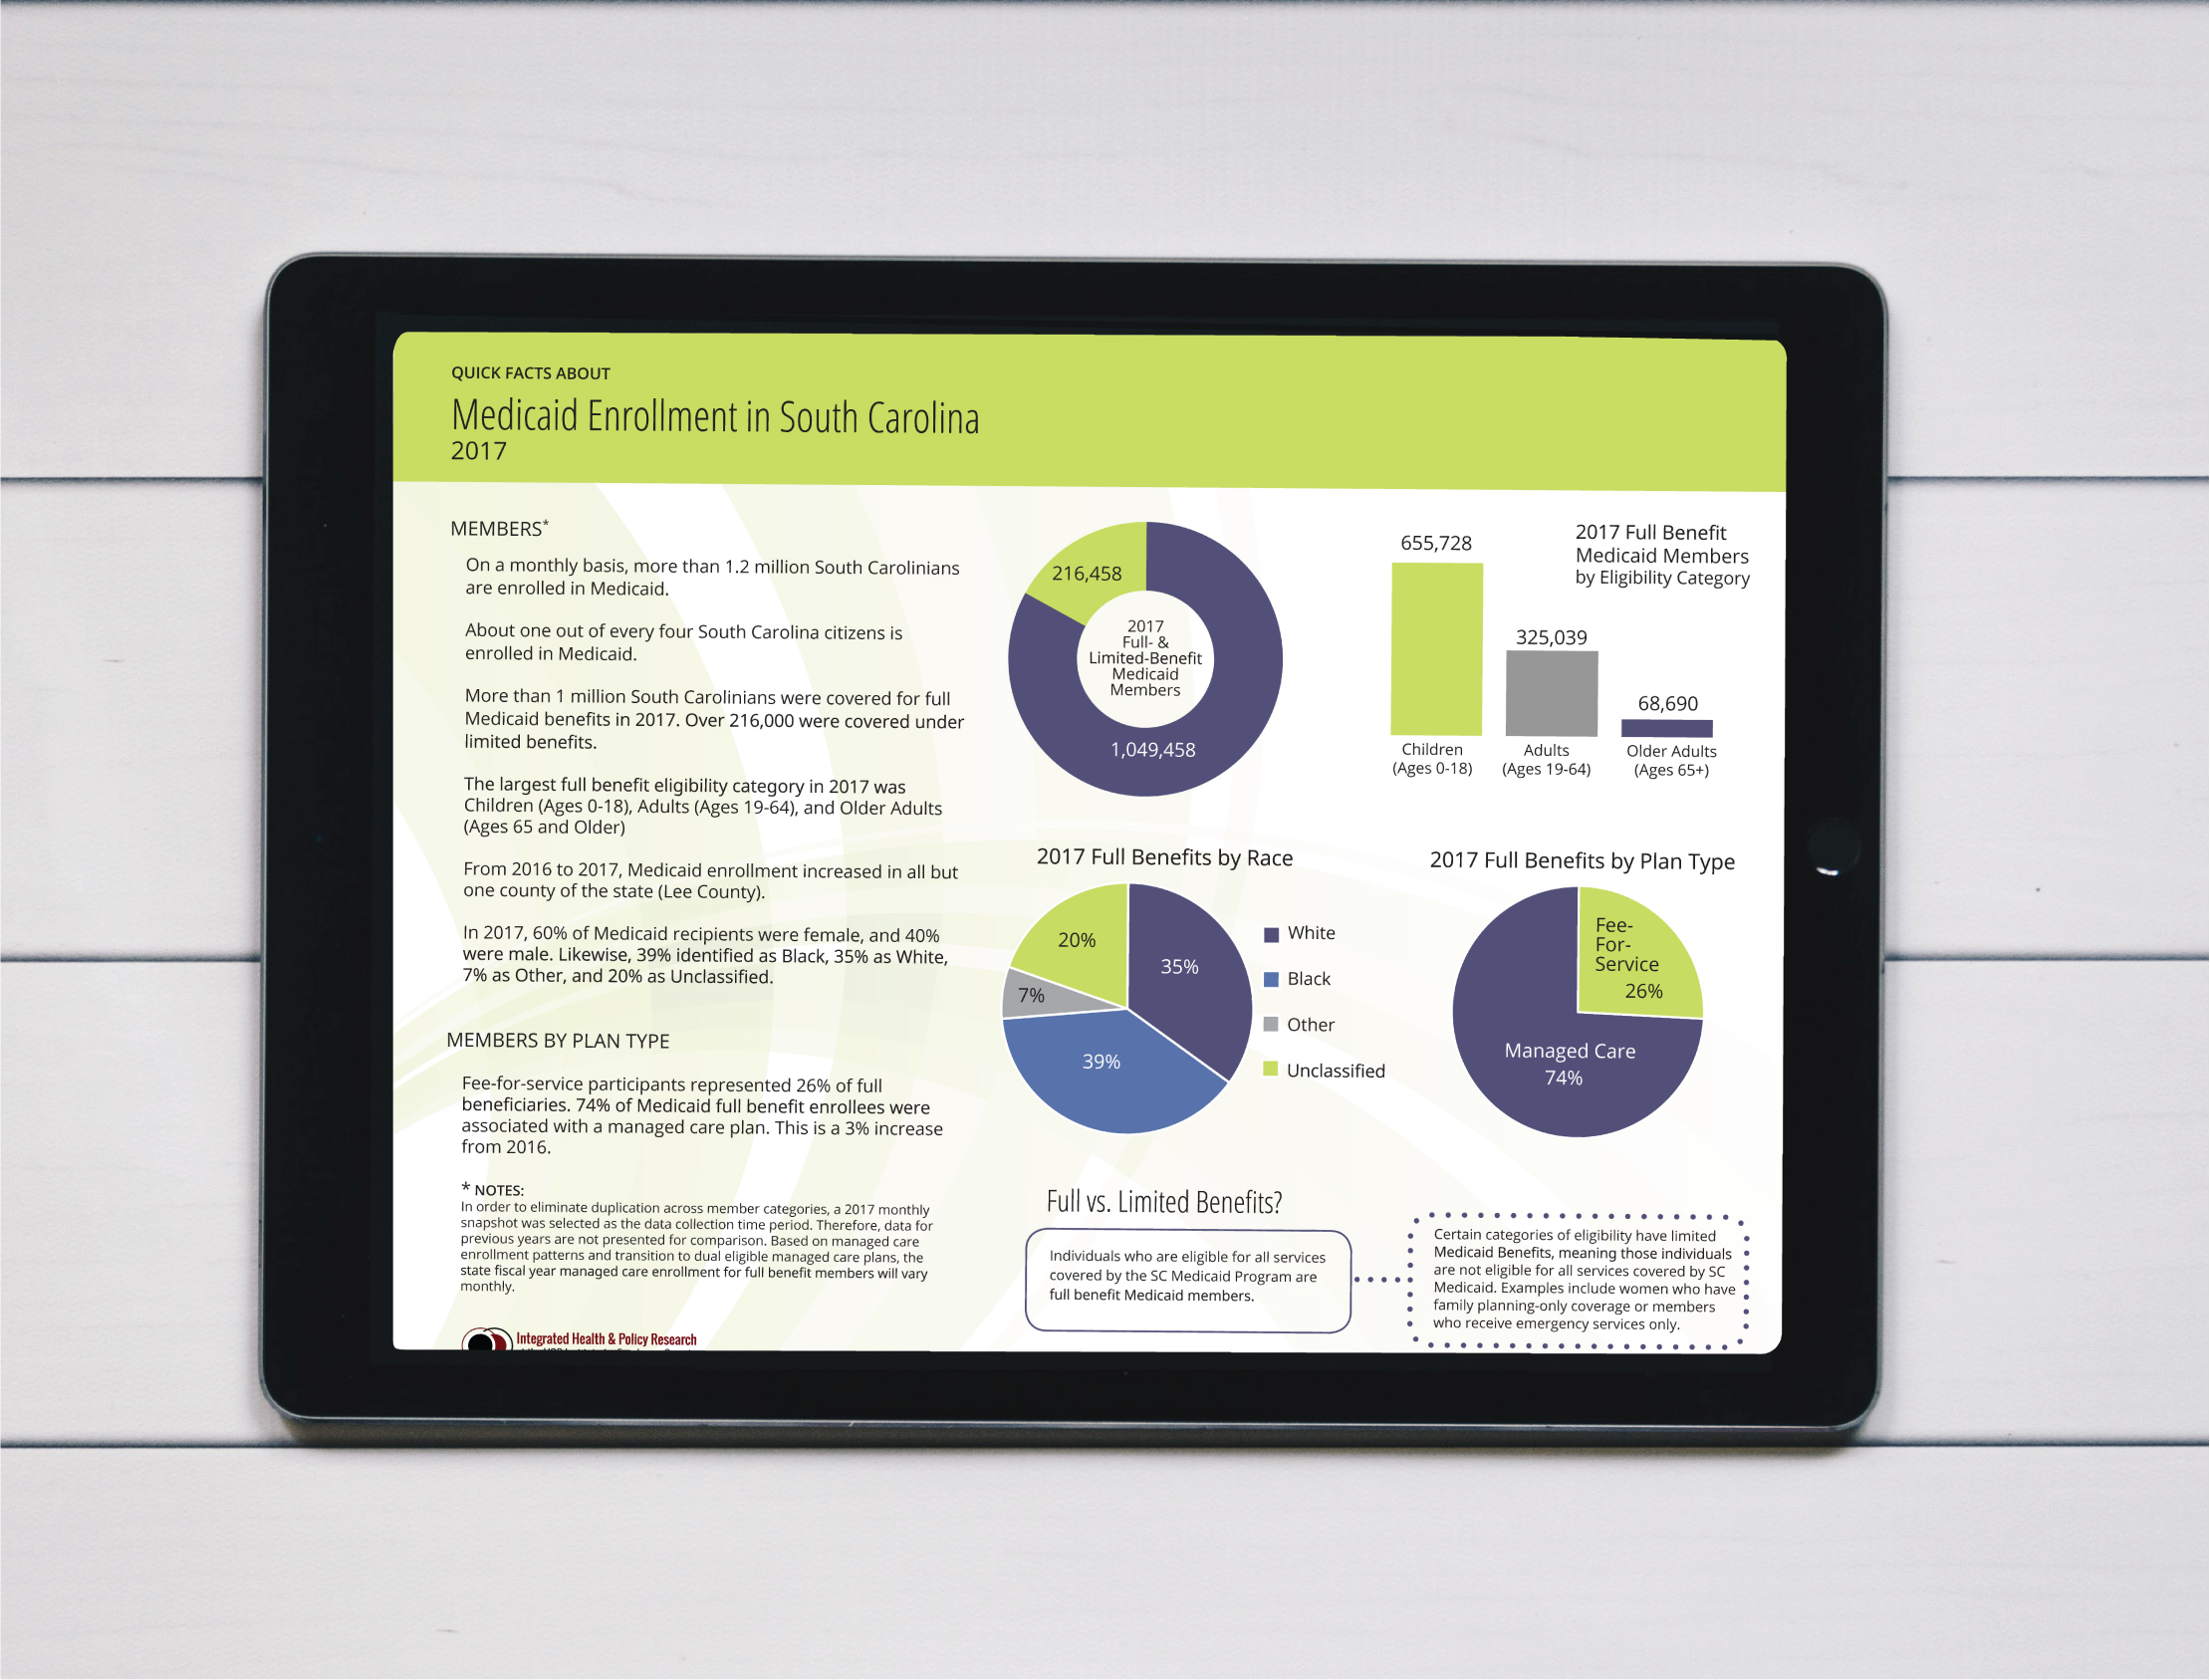 Quick Facts pdf shown on a tablet screen